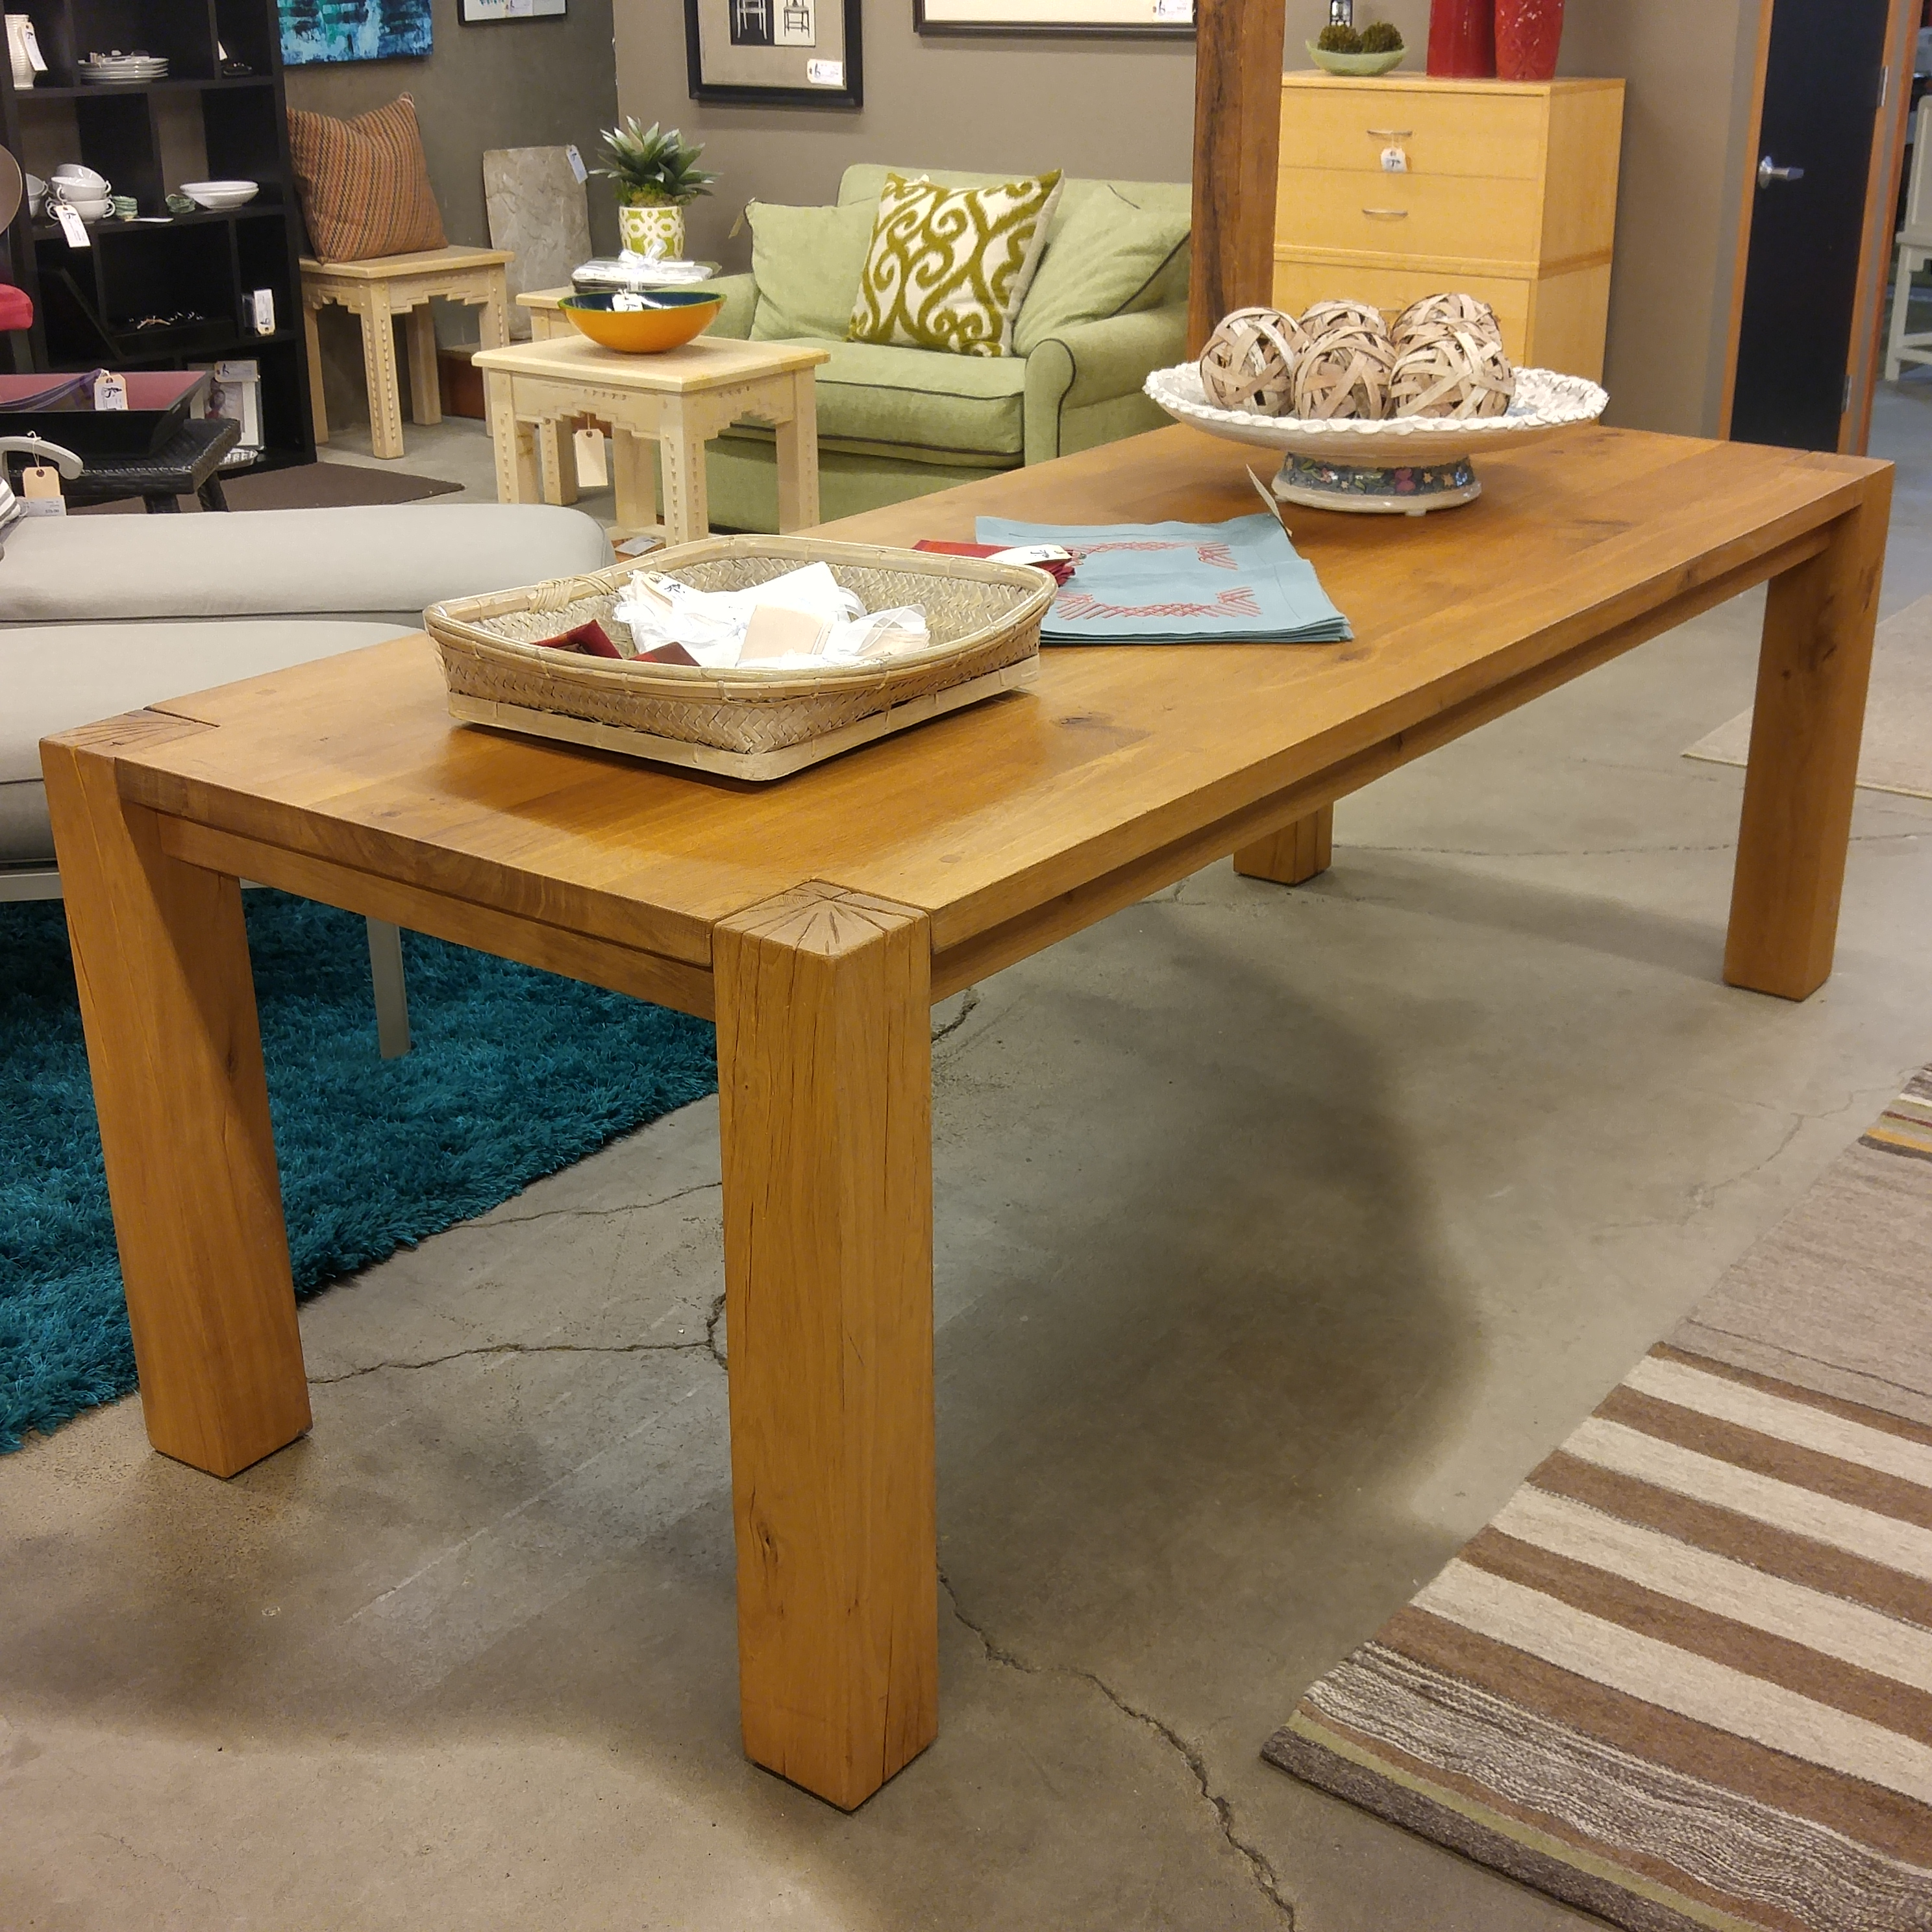 Currently Offered At Crate And Barrel For $1799, We Have This Gorgeously  Rustic 90.5u2033 Big Sur Table Made From Solid European White Oak.